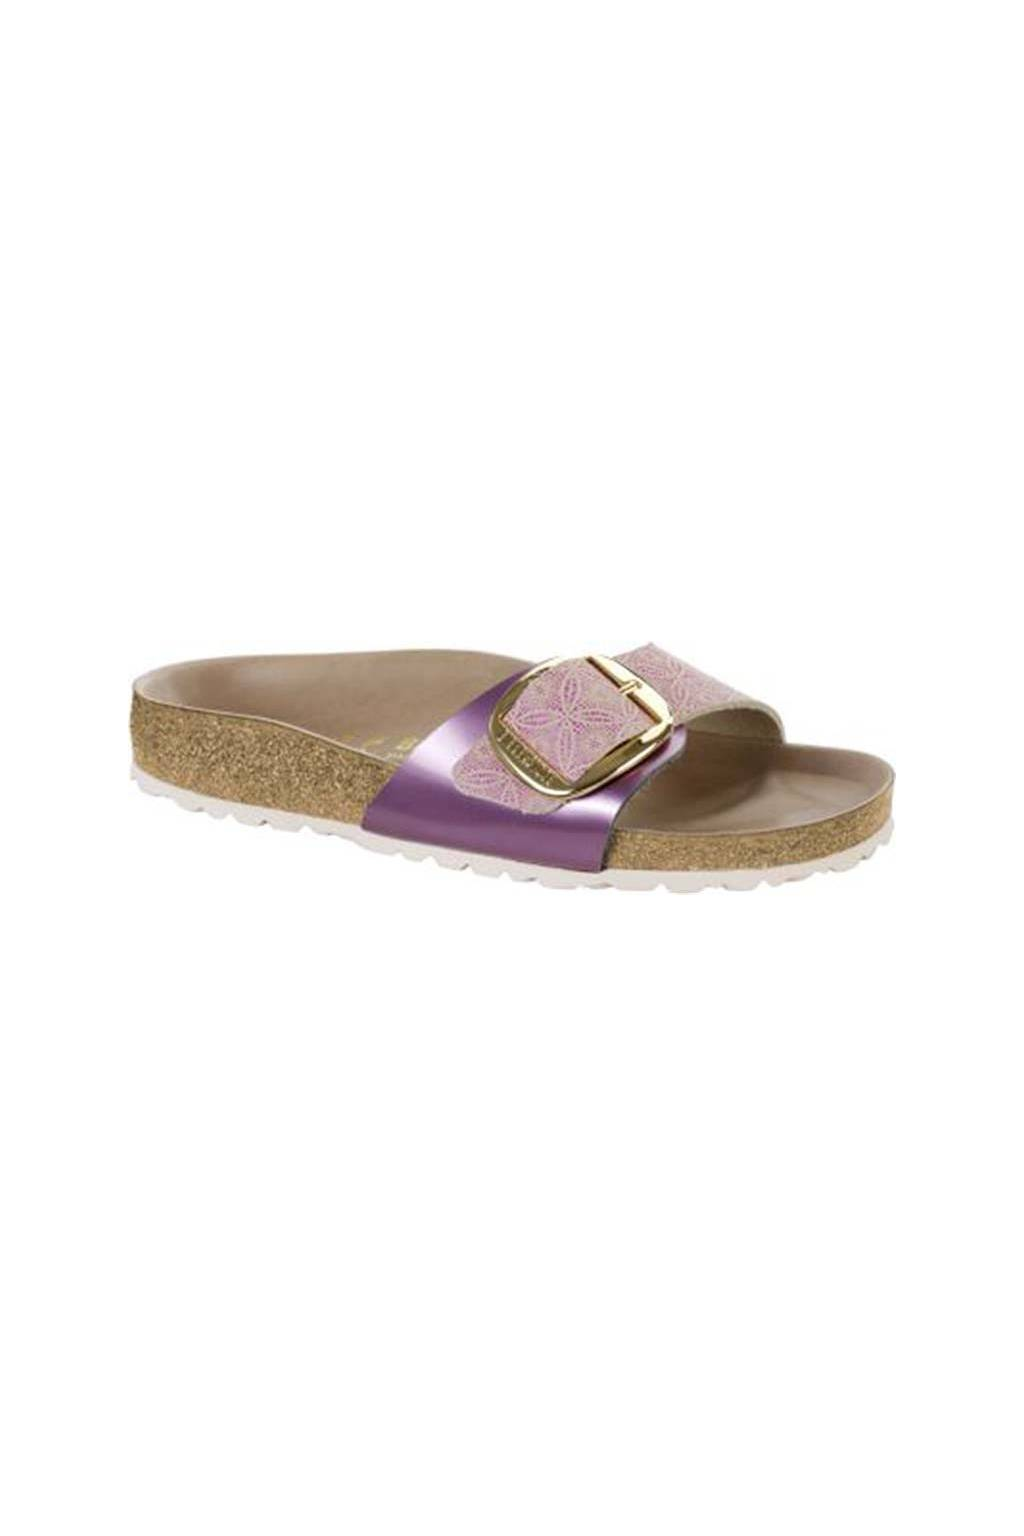 Birkenstock madrid big buckle rose